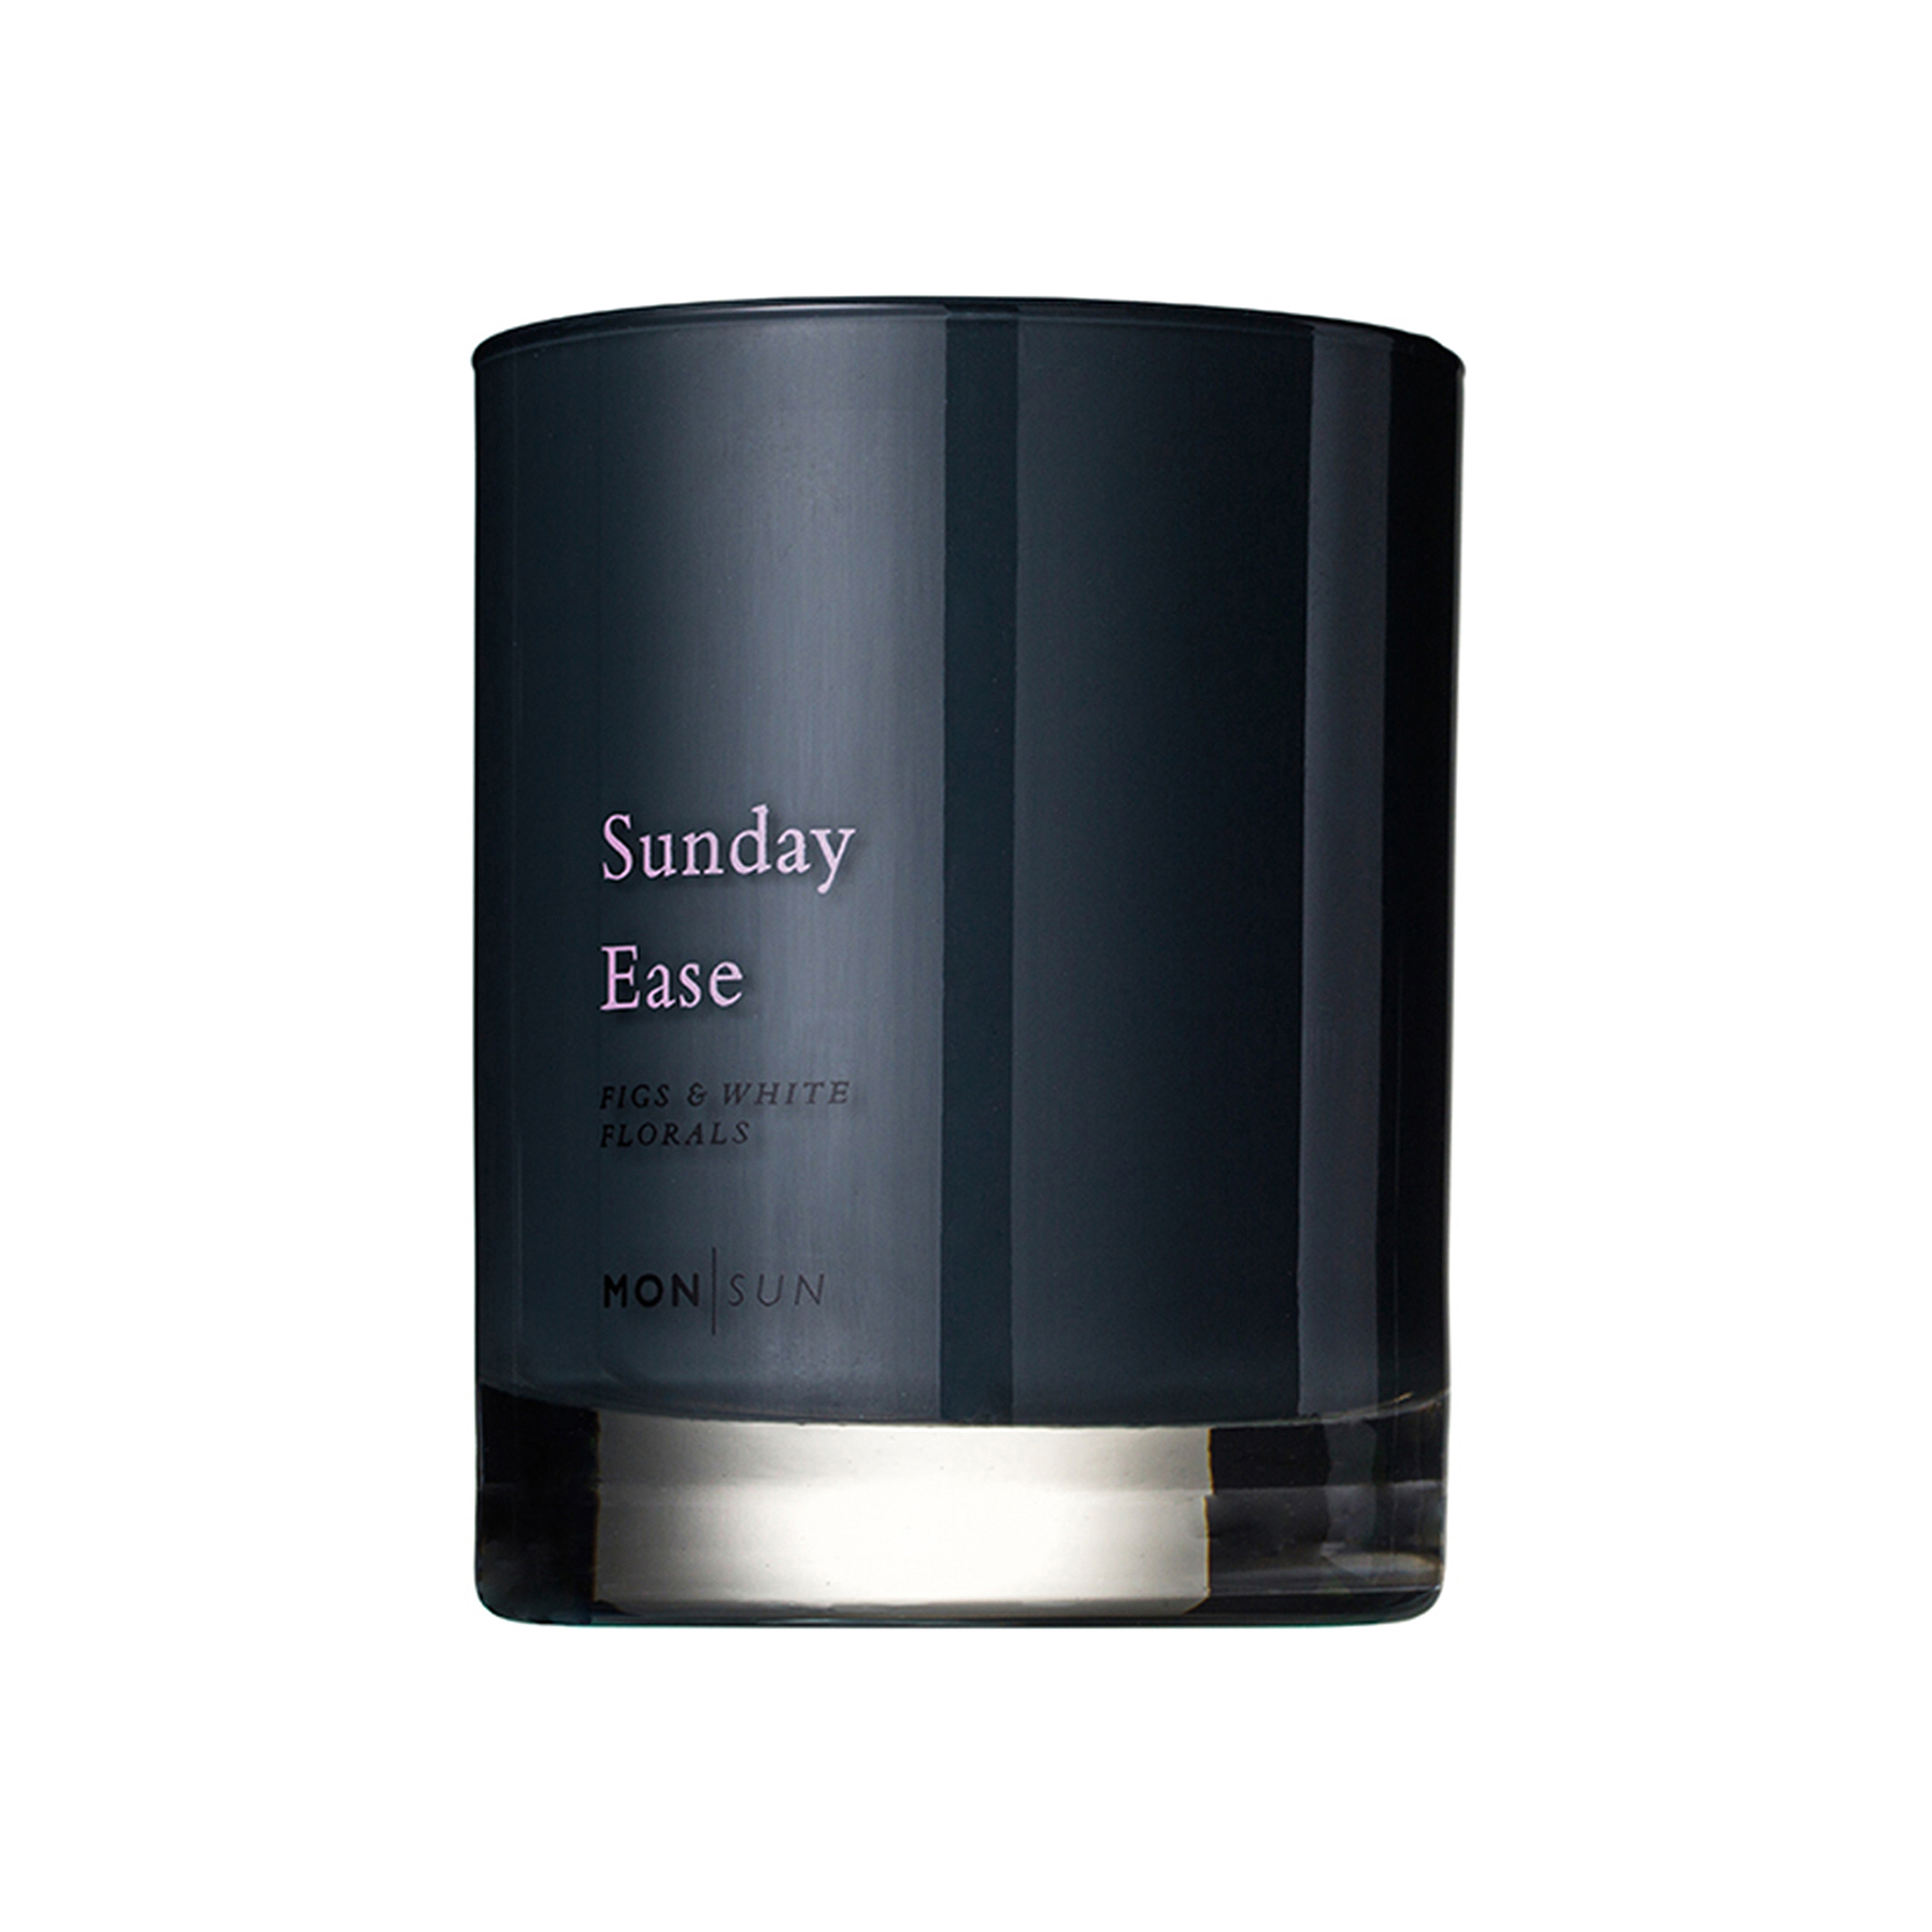 Sunday Ease Calming Oats Scented Candle